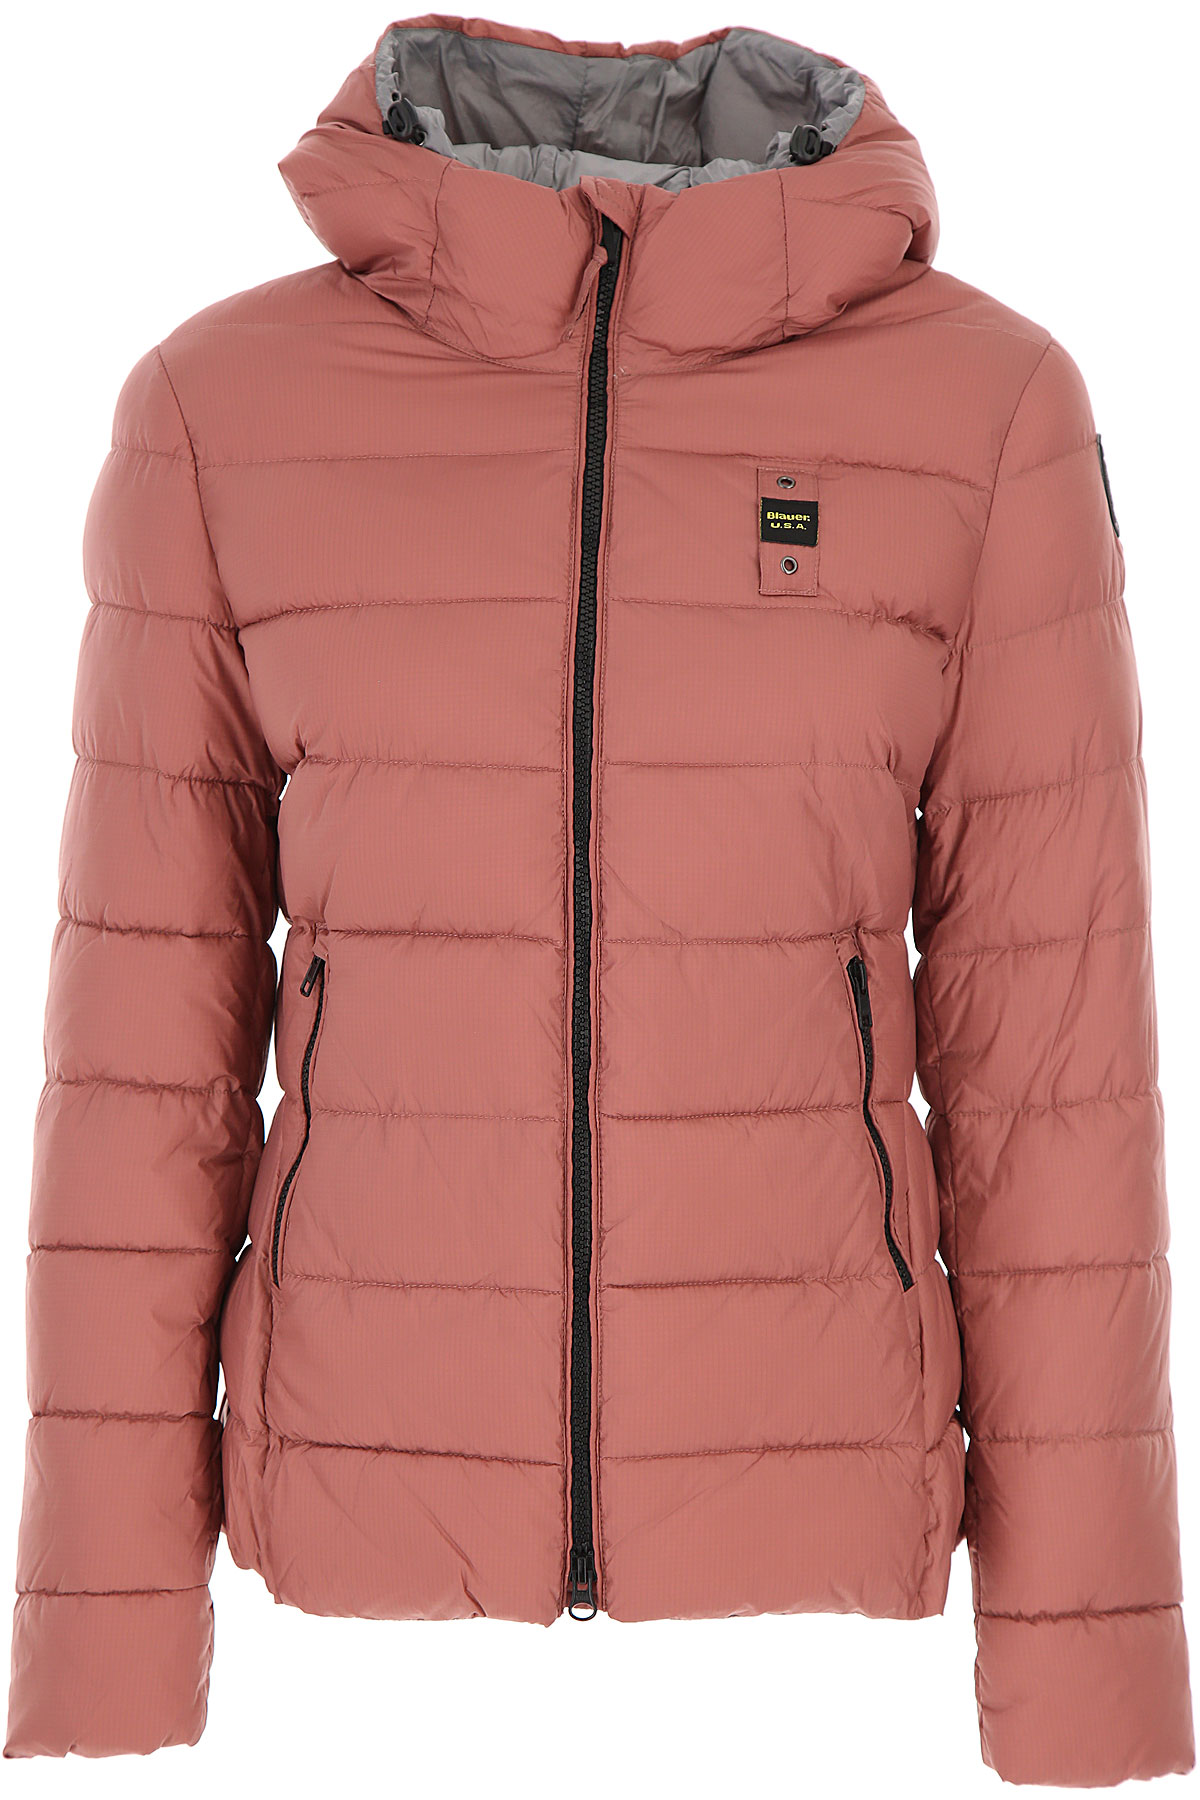 Blauer Down Jacket for Women, Puffer Ski Jacket On Sale, Altrosa Pink, polyester, 2019, 2 4